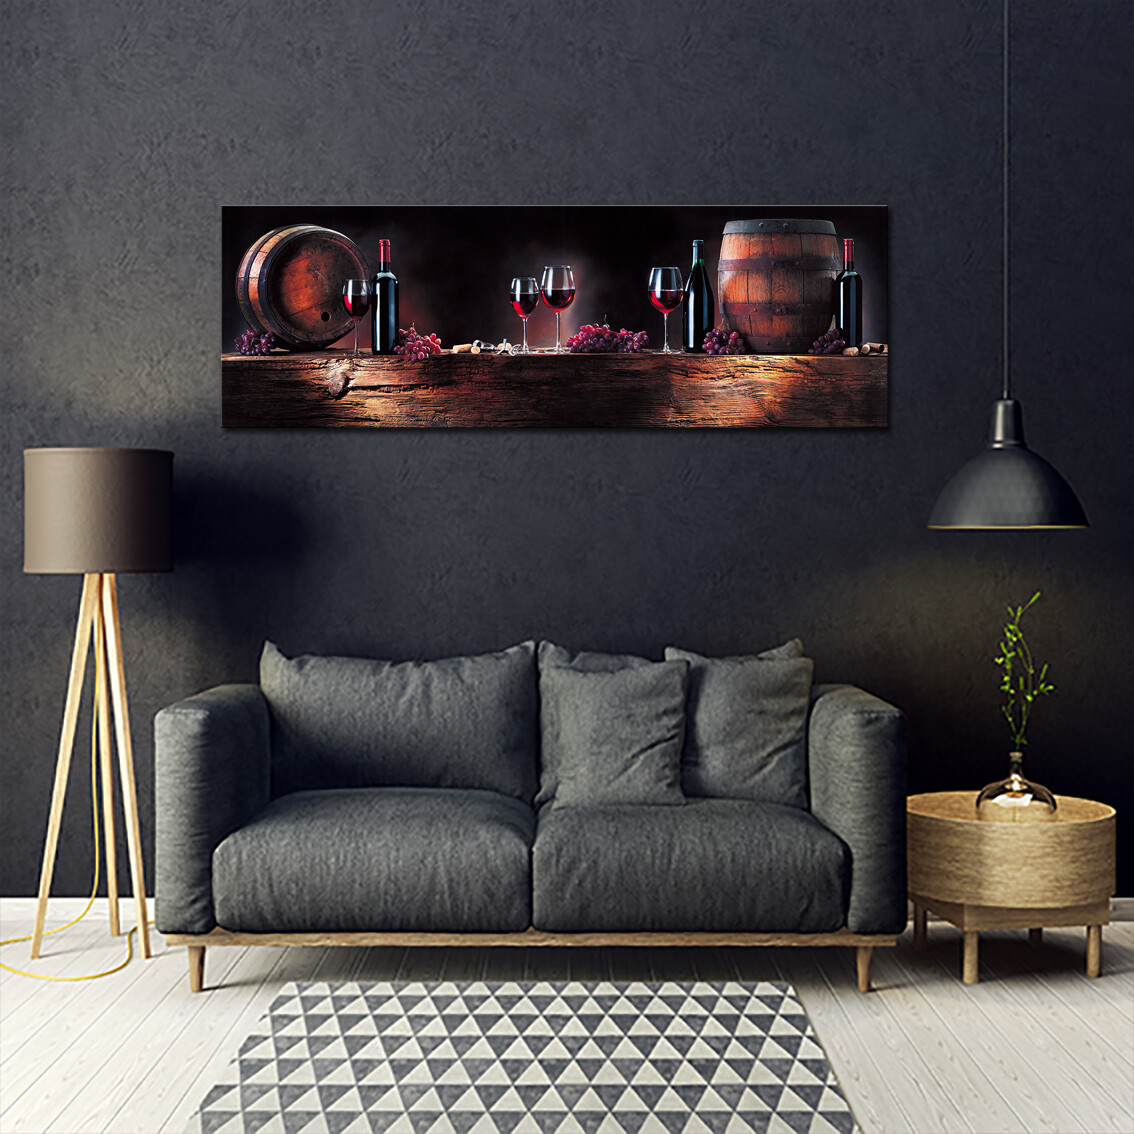 Barile - Modern Luxury Wall art Printed on Acrylic Glass - Frameless and Ready to Hang